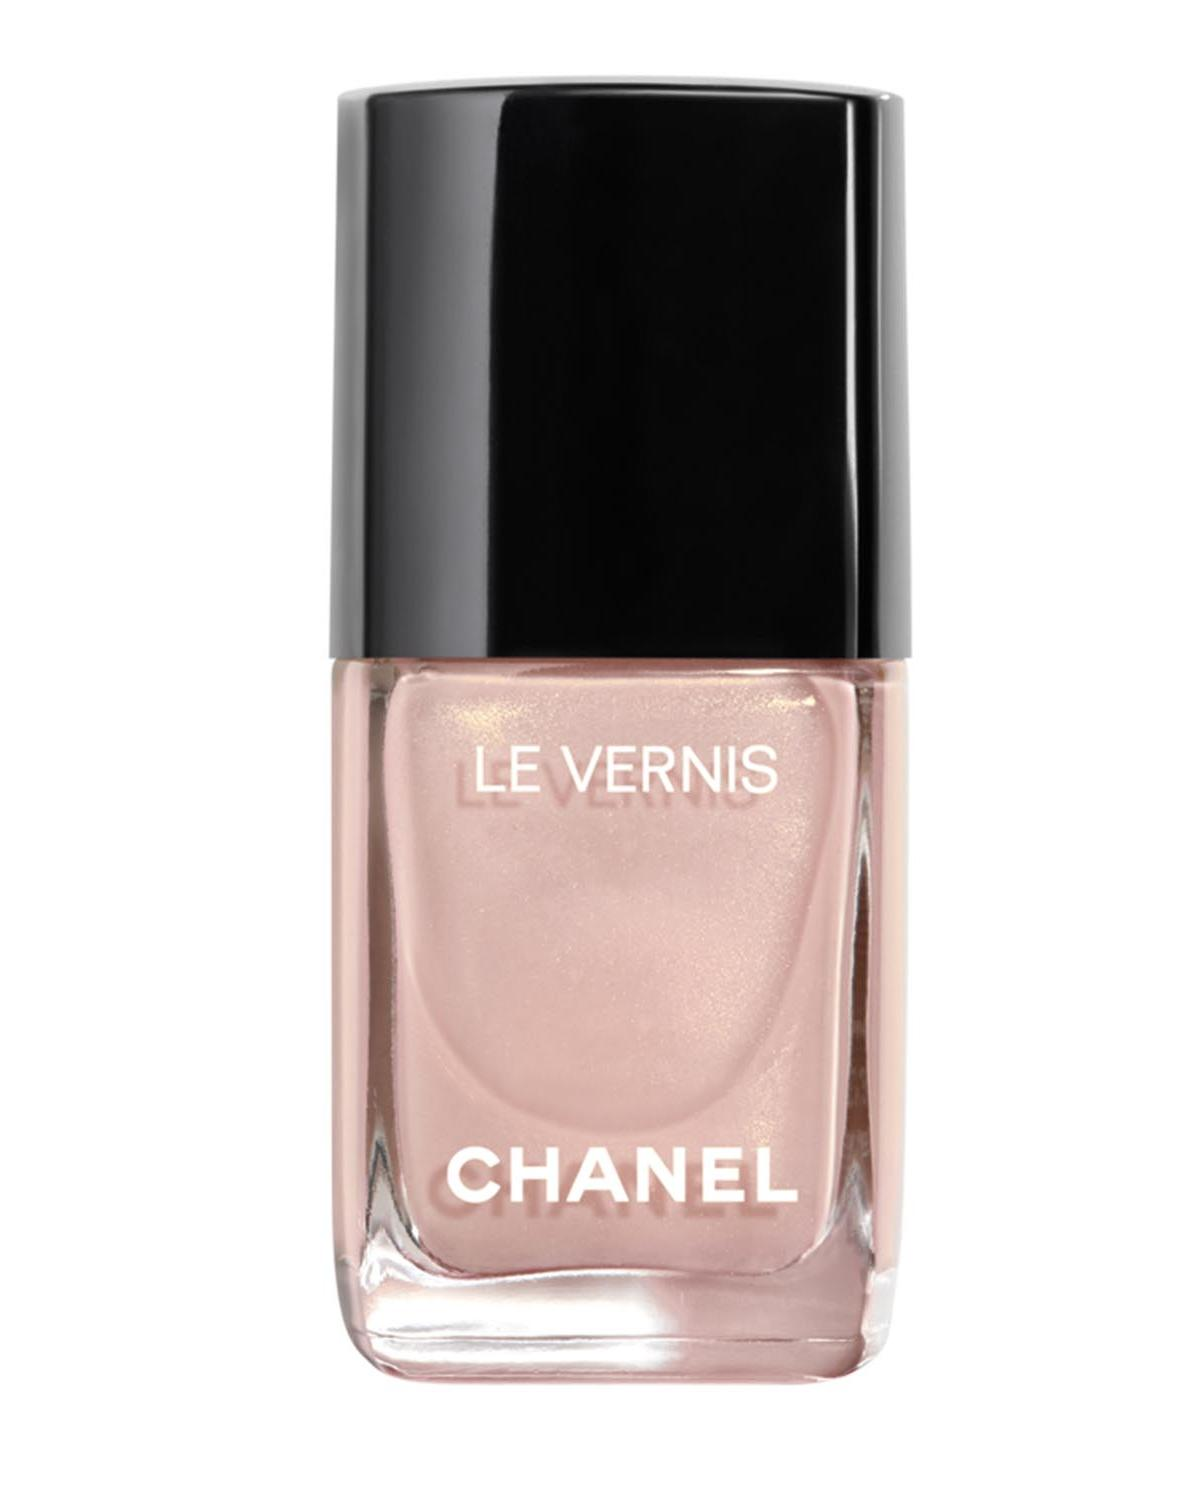 Chanel Le Vernis Longwear Nail Colour in Daydream